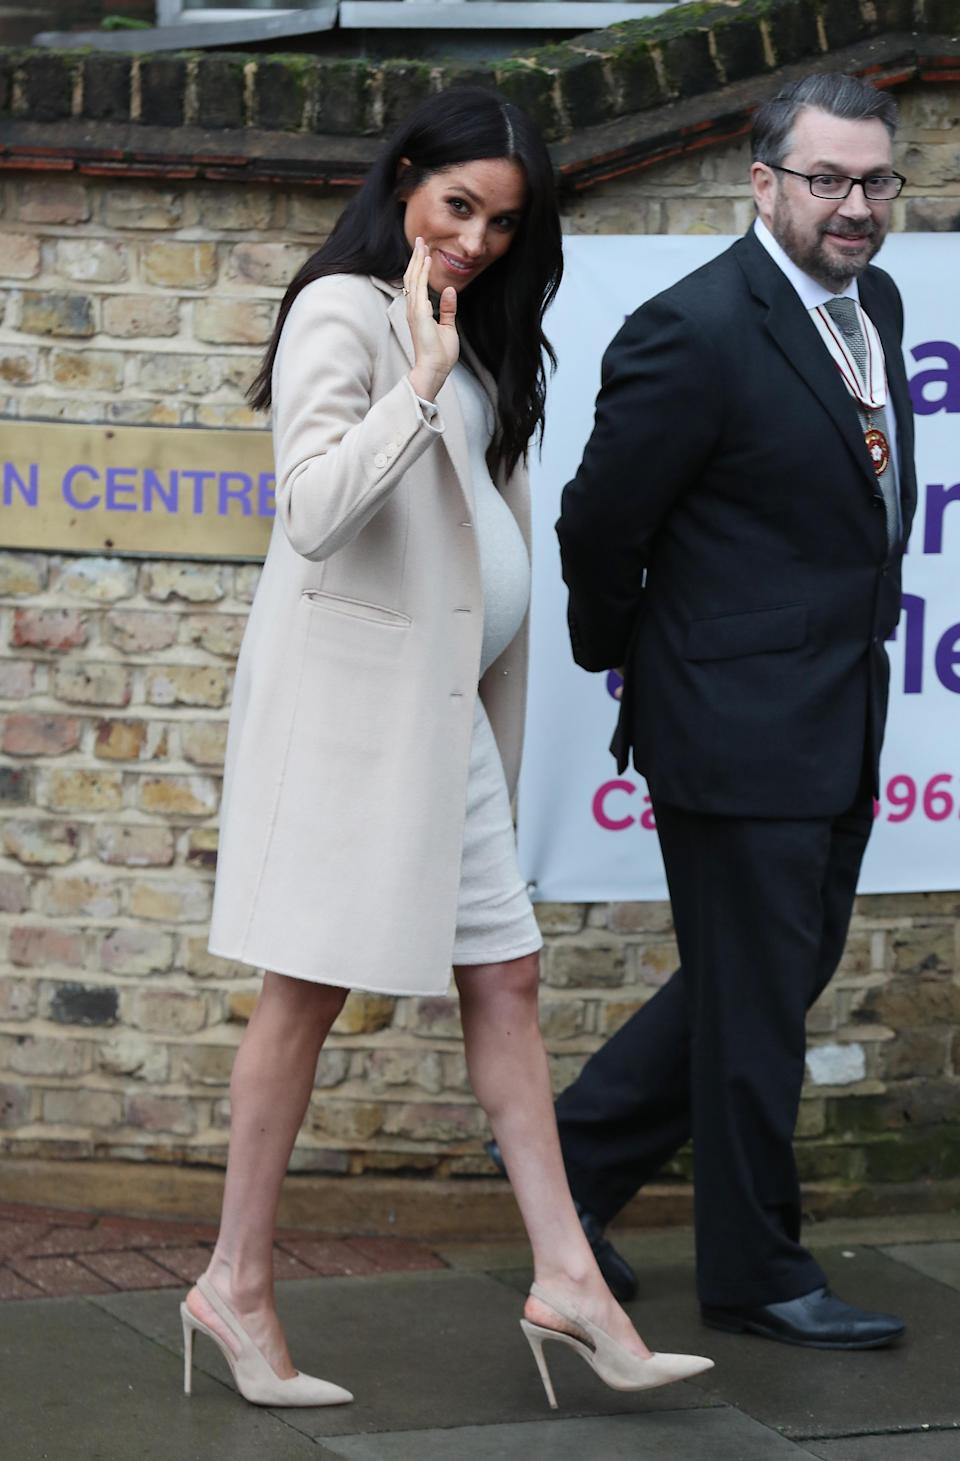 <p>For her first solo engagement of 2019, the Duchess of Sussex surprised fans in a £25 H&M maternity dress. A slick Armani coat, £713 Stella McCartney bag and £564 Manolo Blahnik slingbacks finished the minimal ensemble. For a touch of sparkle, Meghan opted for her go-to £876 Birks diamond stud earrings. <em>[Photo: Getty]</em> </p>